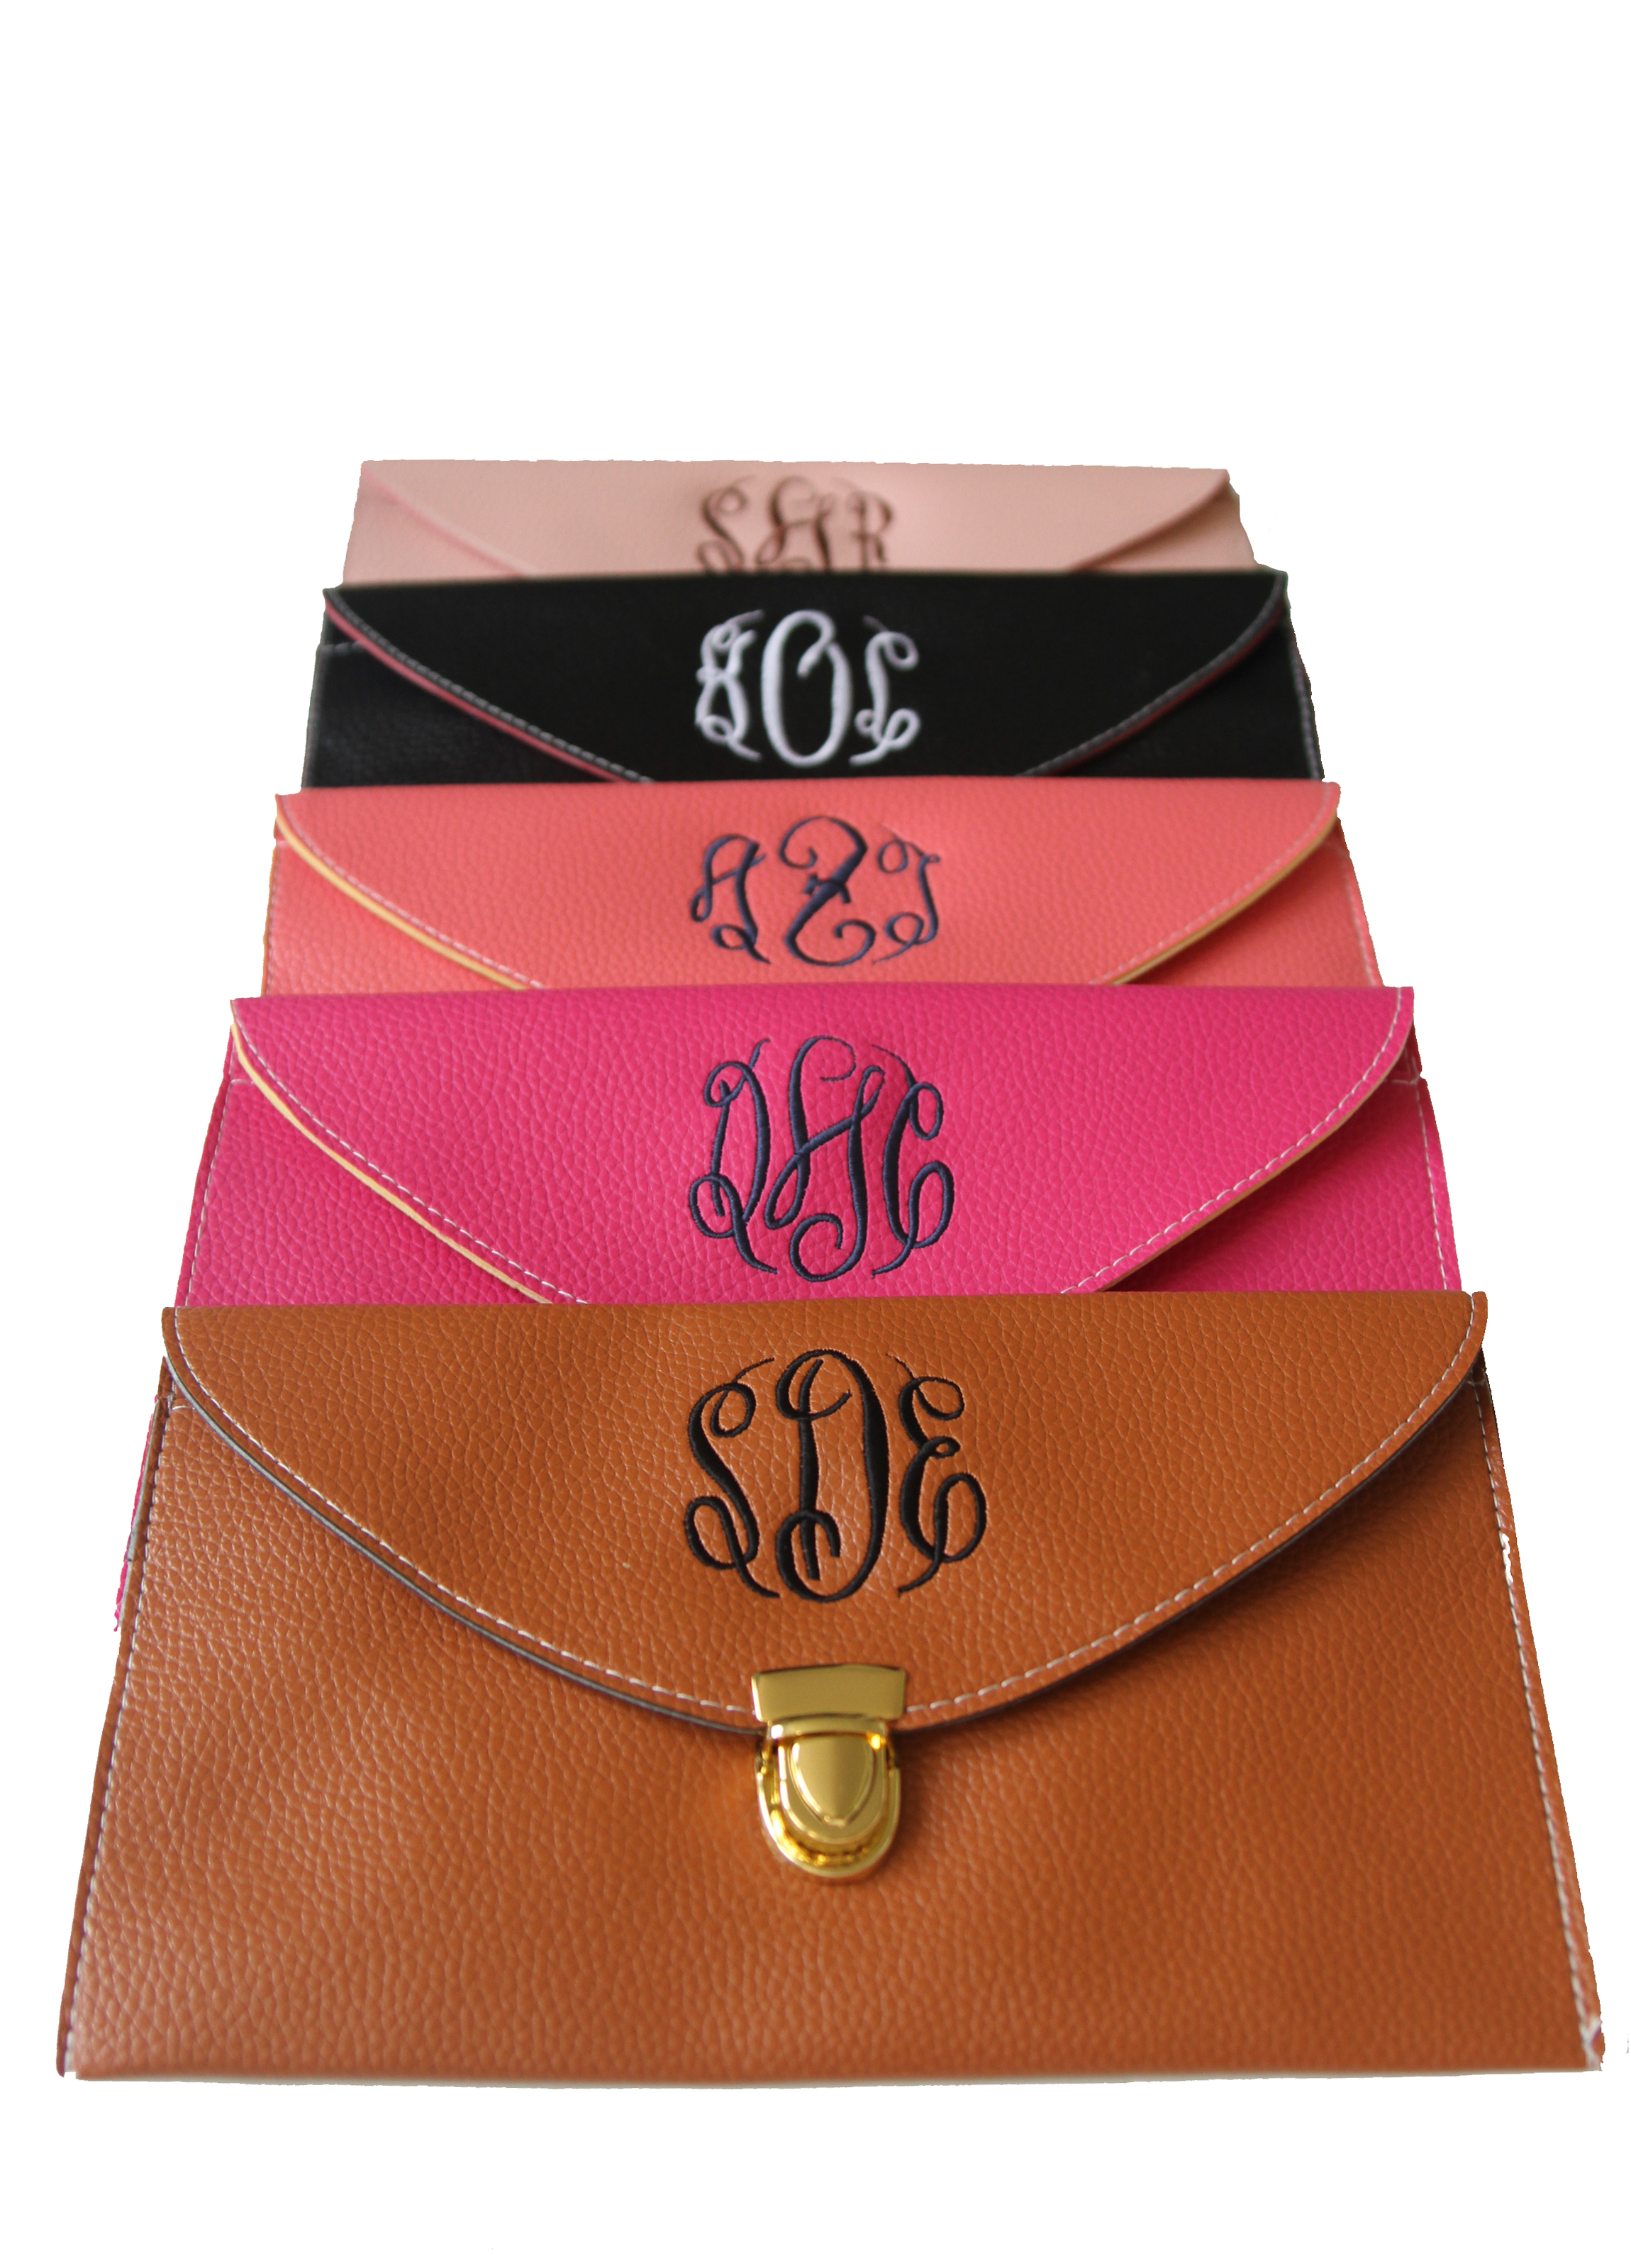 clutches are back!